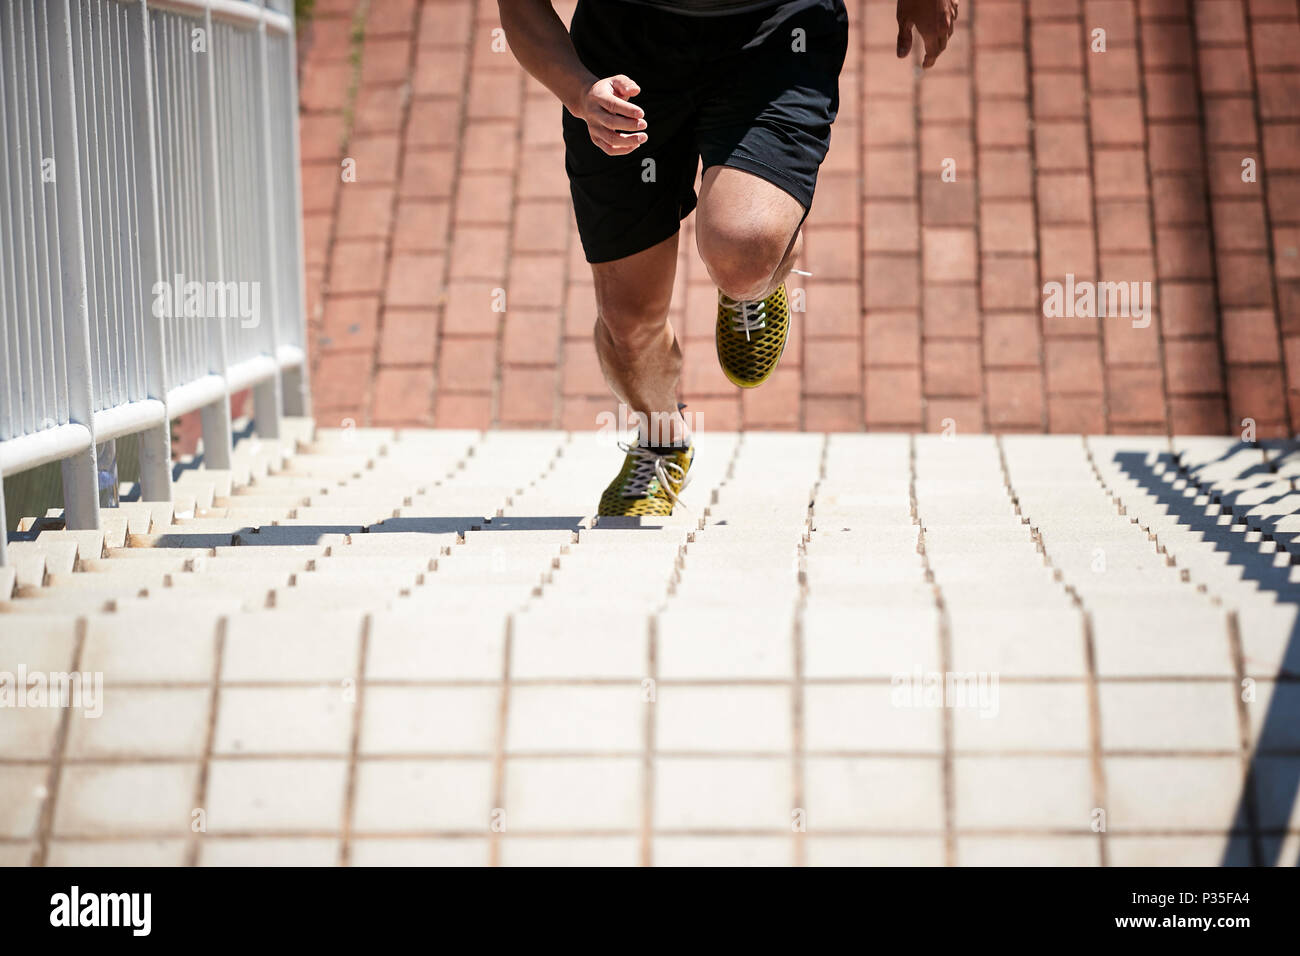 young asian adult male athlete using steps to train speed and strength. Stock Photo